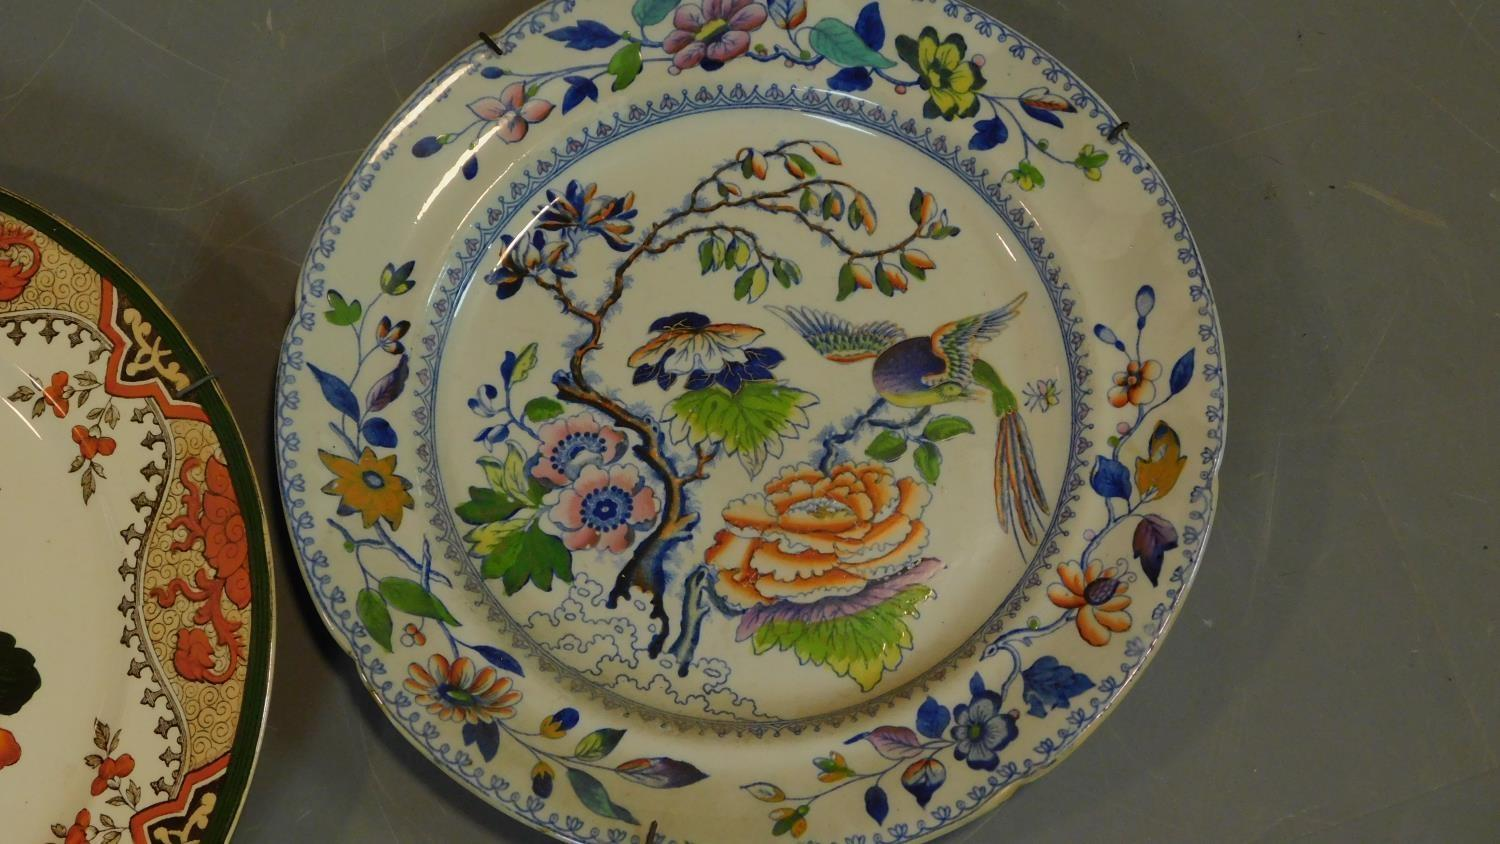 A 19th century Staffordshire ironstone tureen and cover (associated ladle) and various other - Image 3 of 18